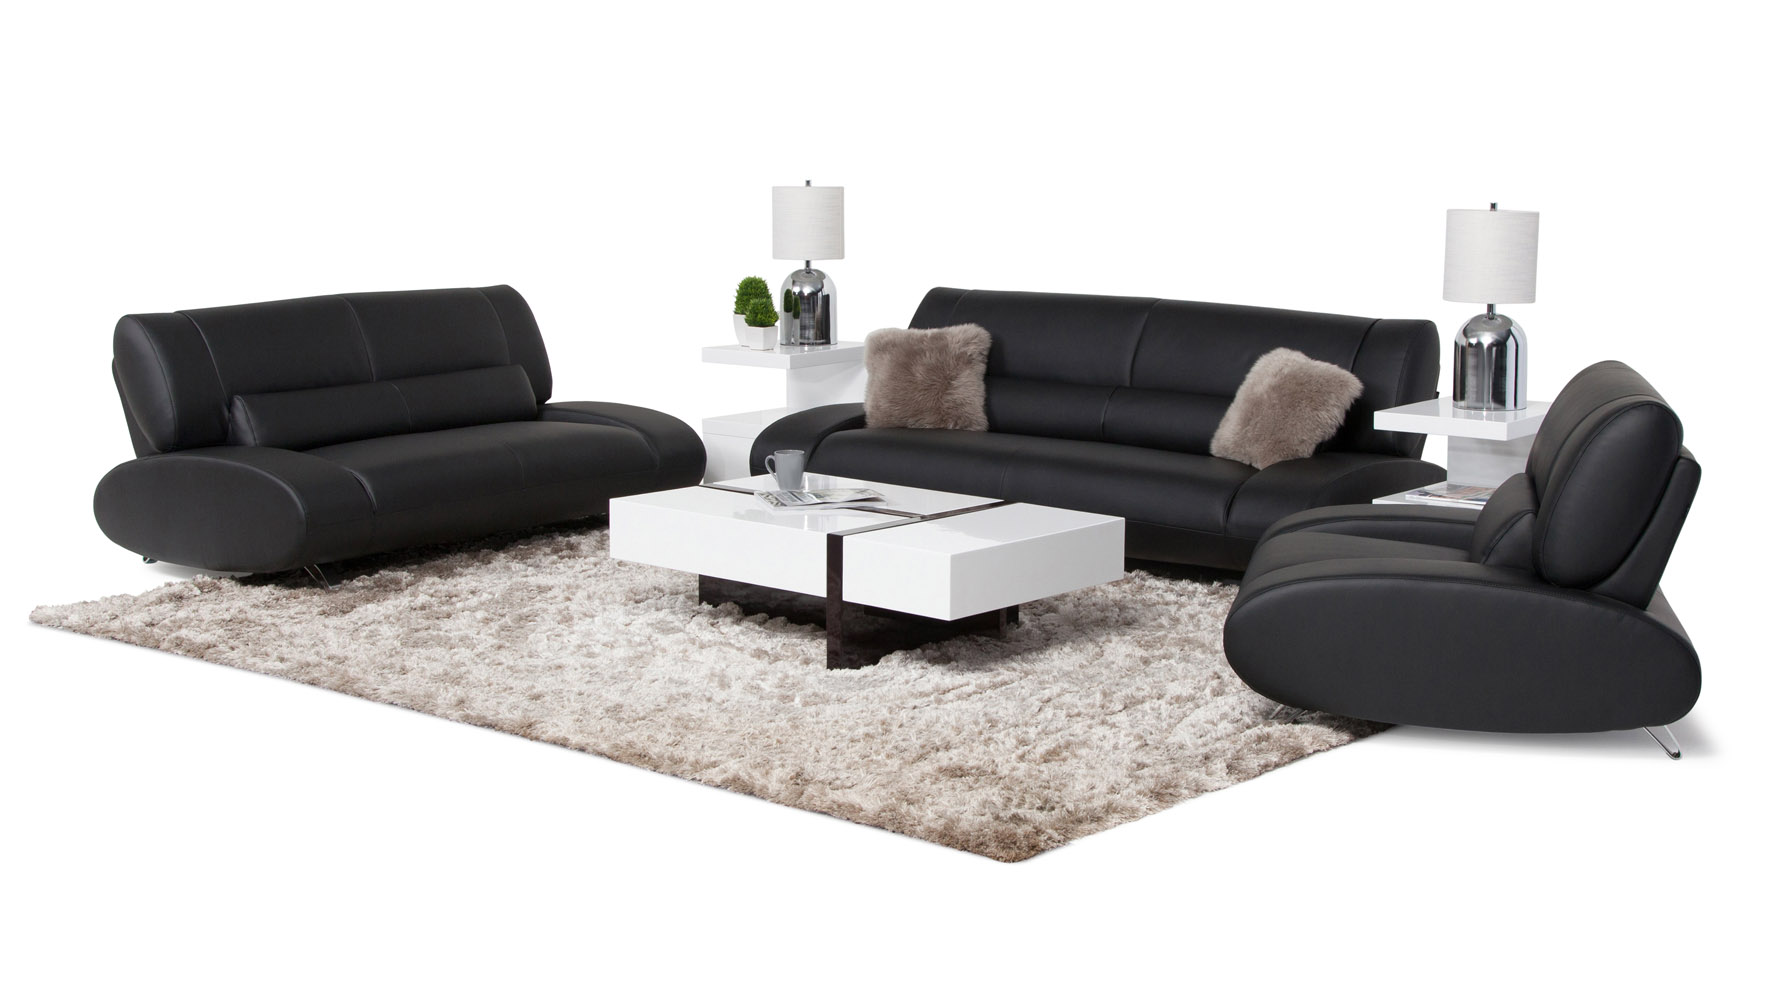 Aspen Group Zuri Furniture